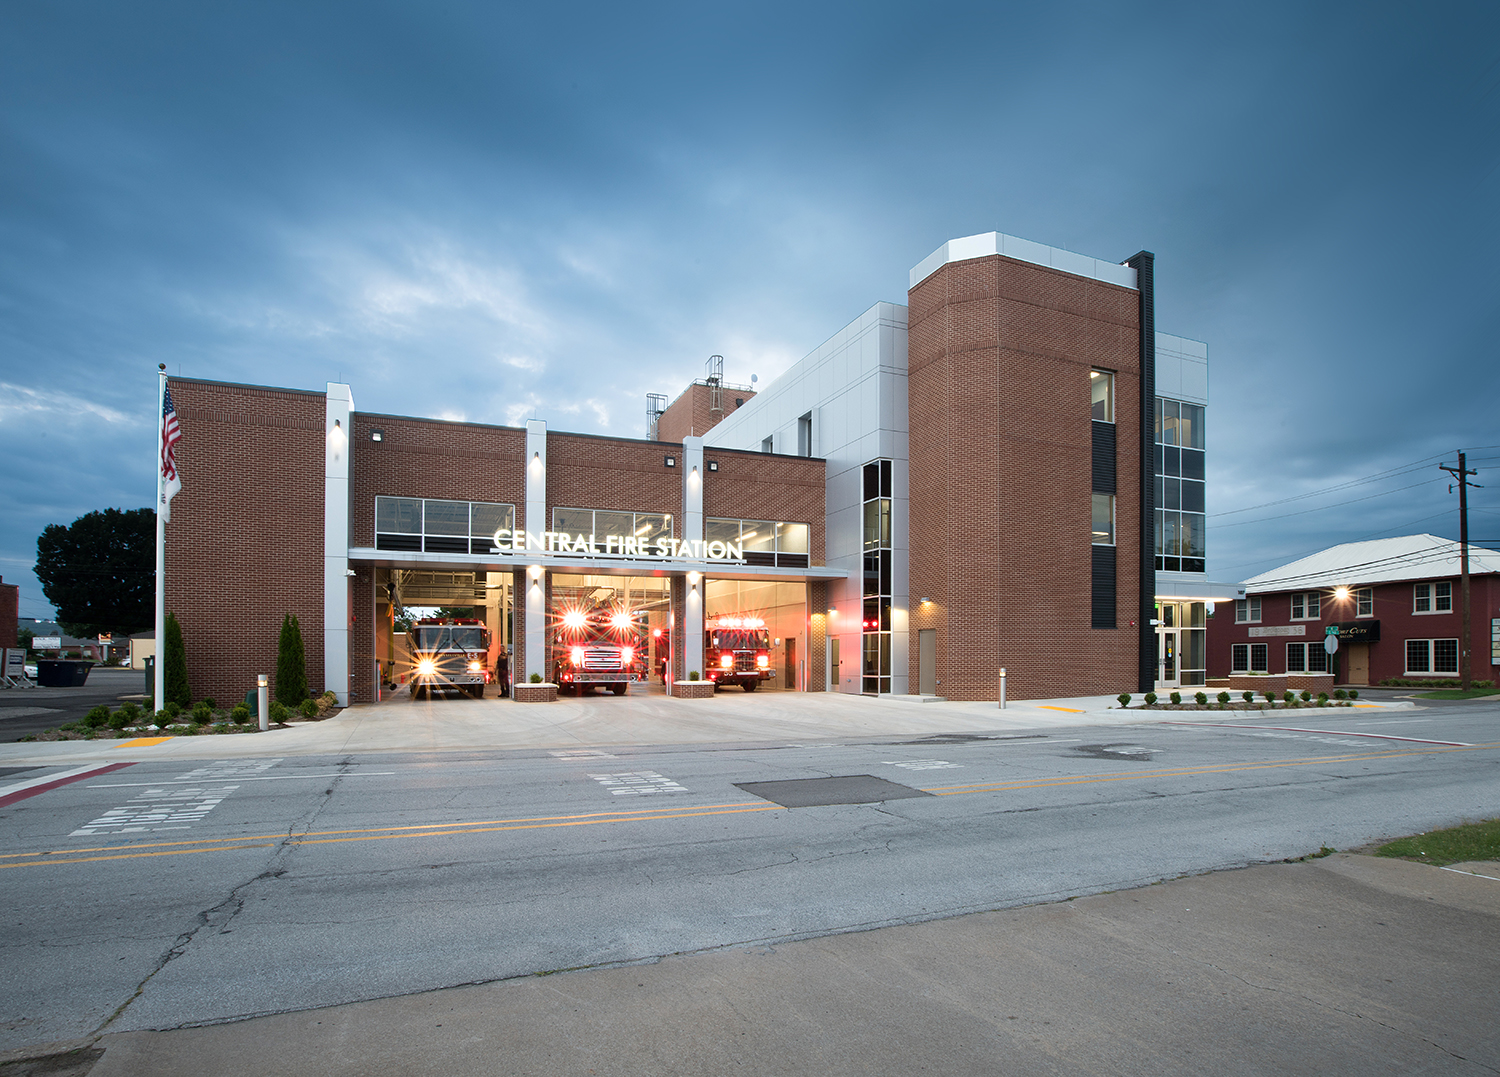 Russellville Central Fire Station #34